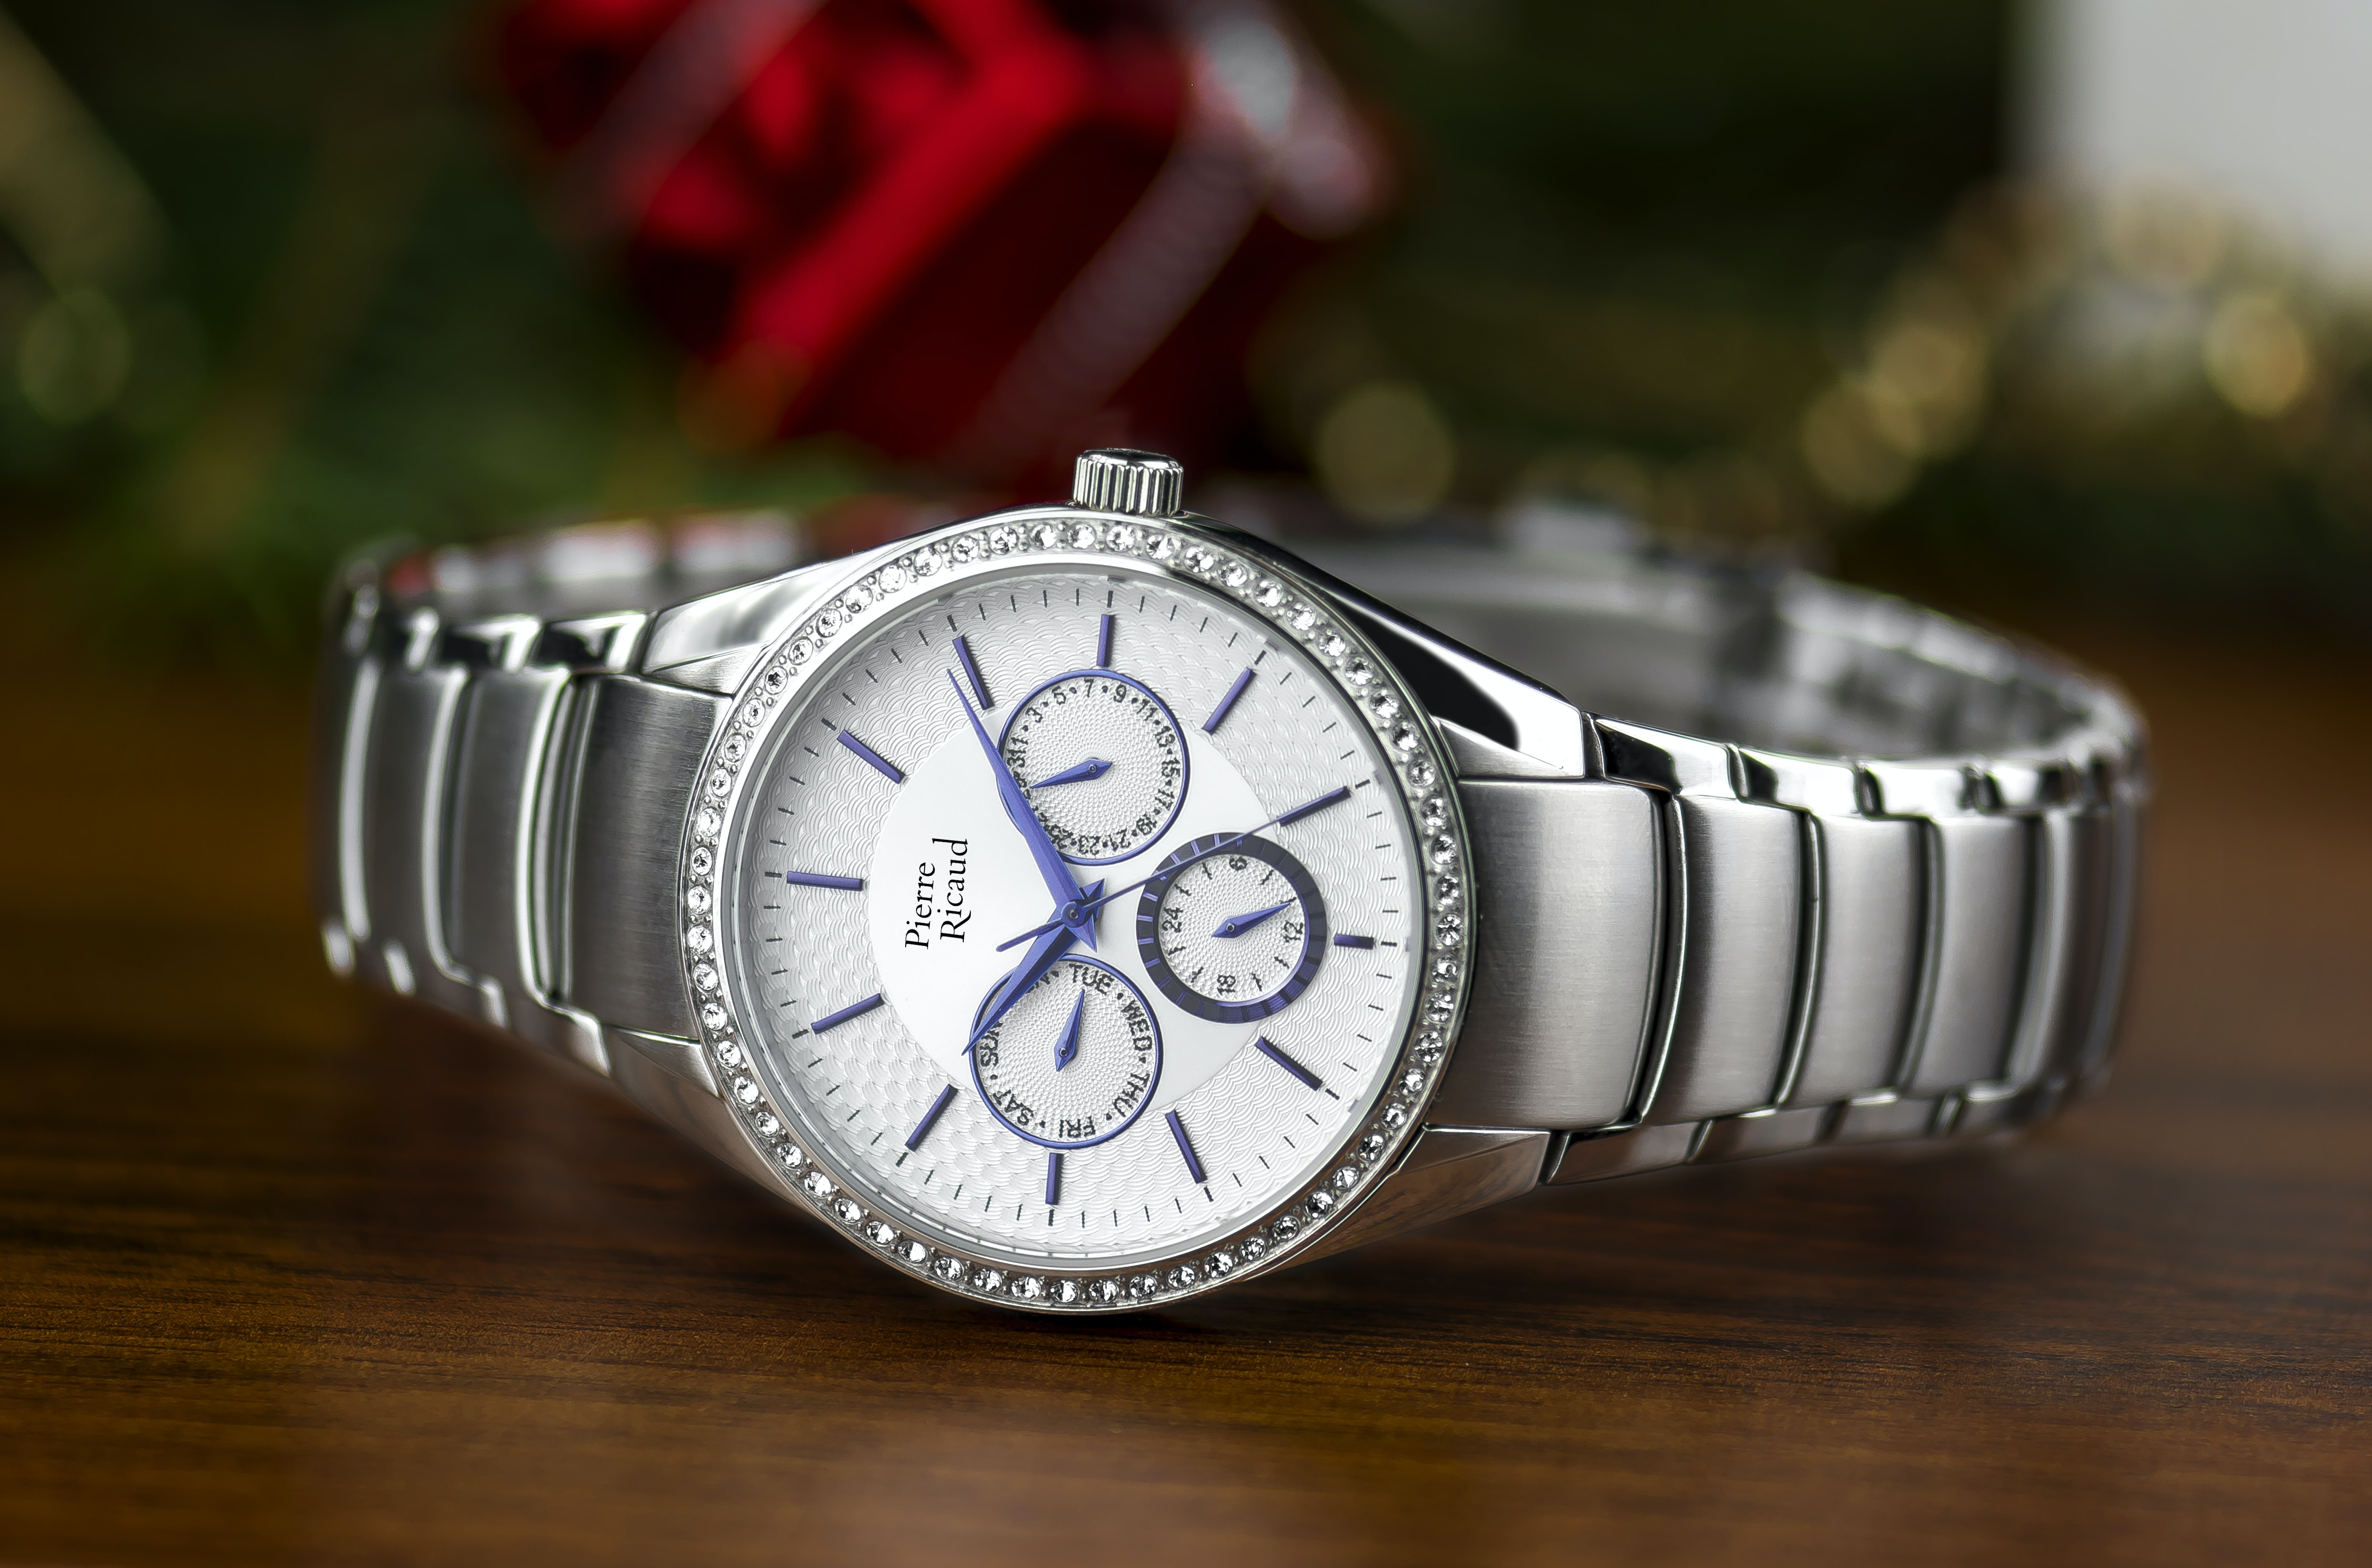 shallow focus photography of silver-colored chronograph watch with link bracelet